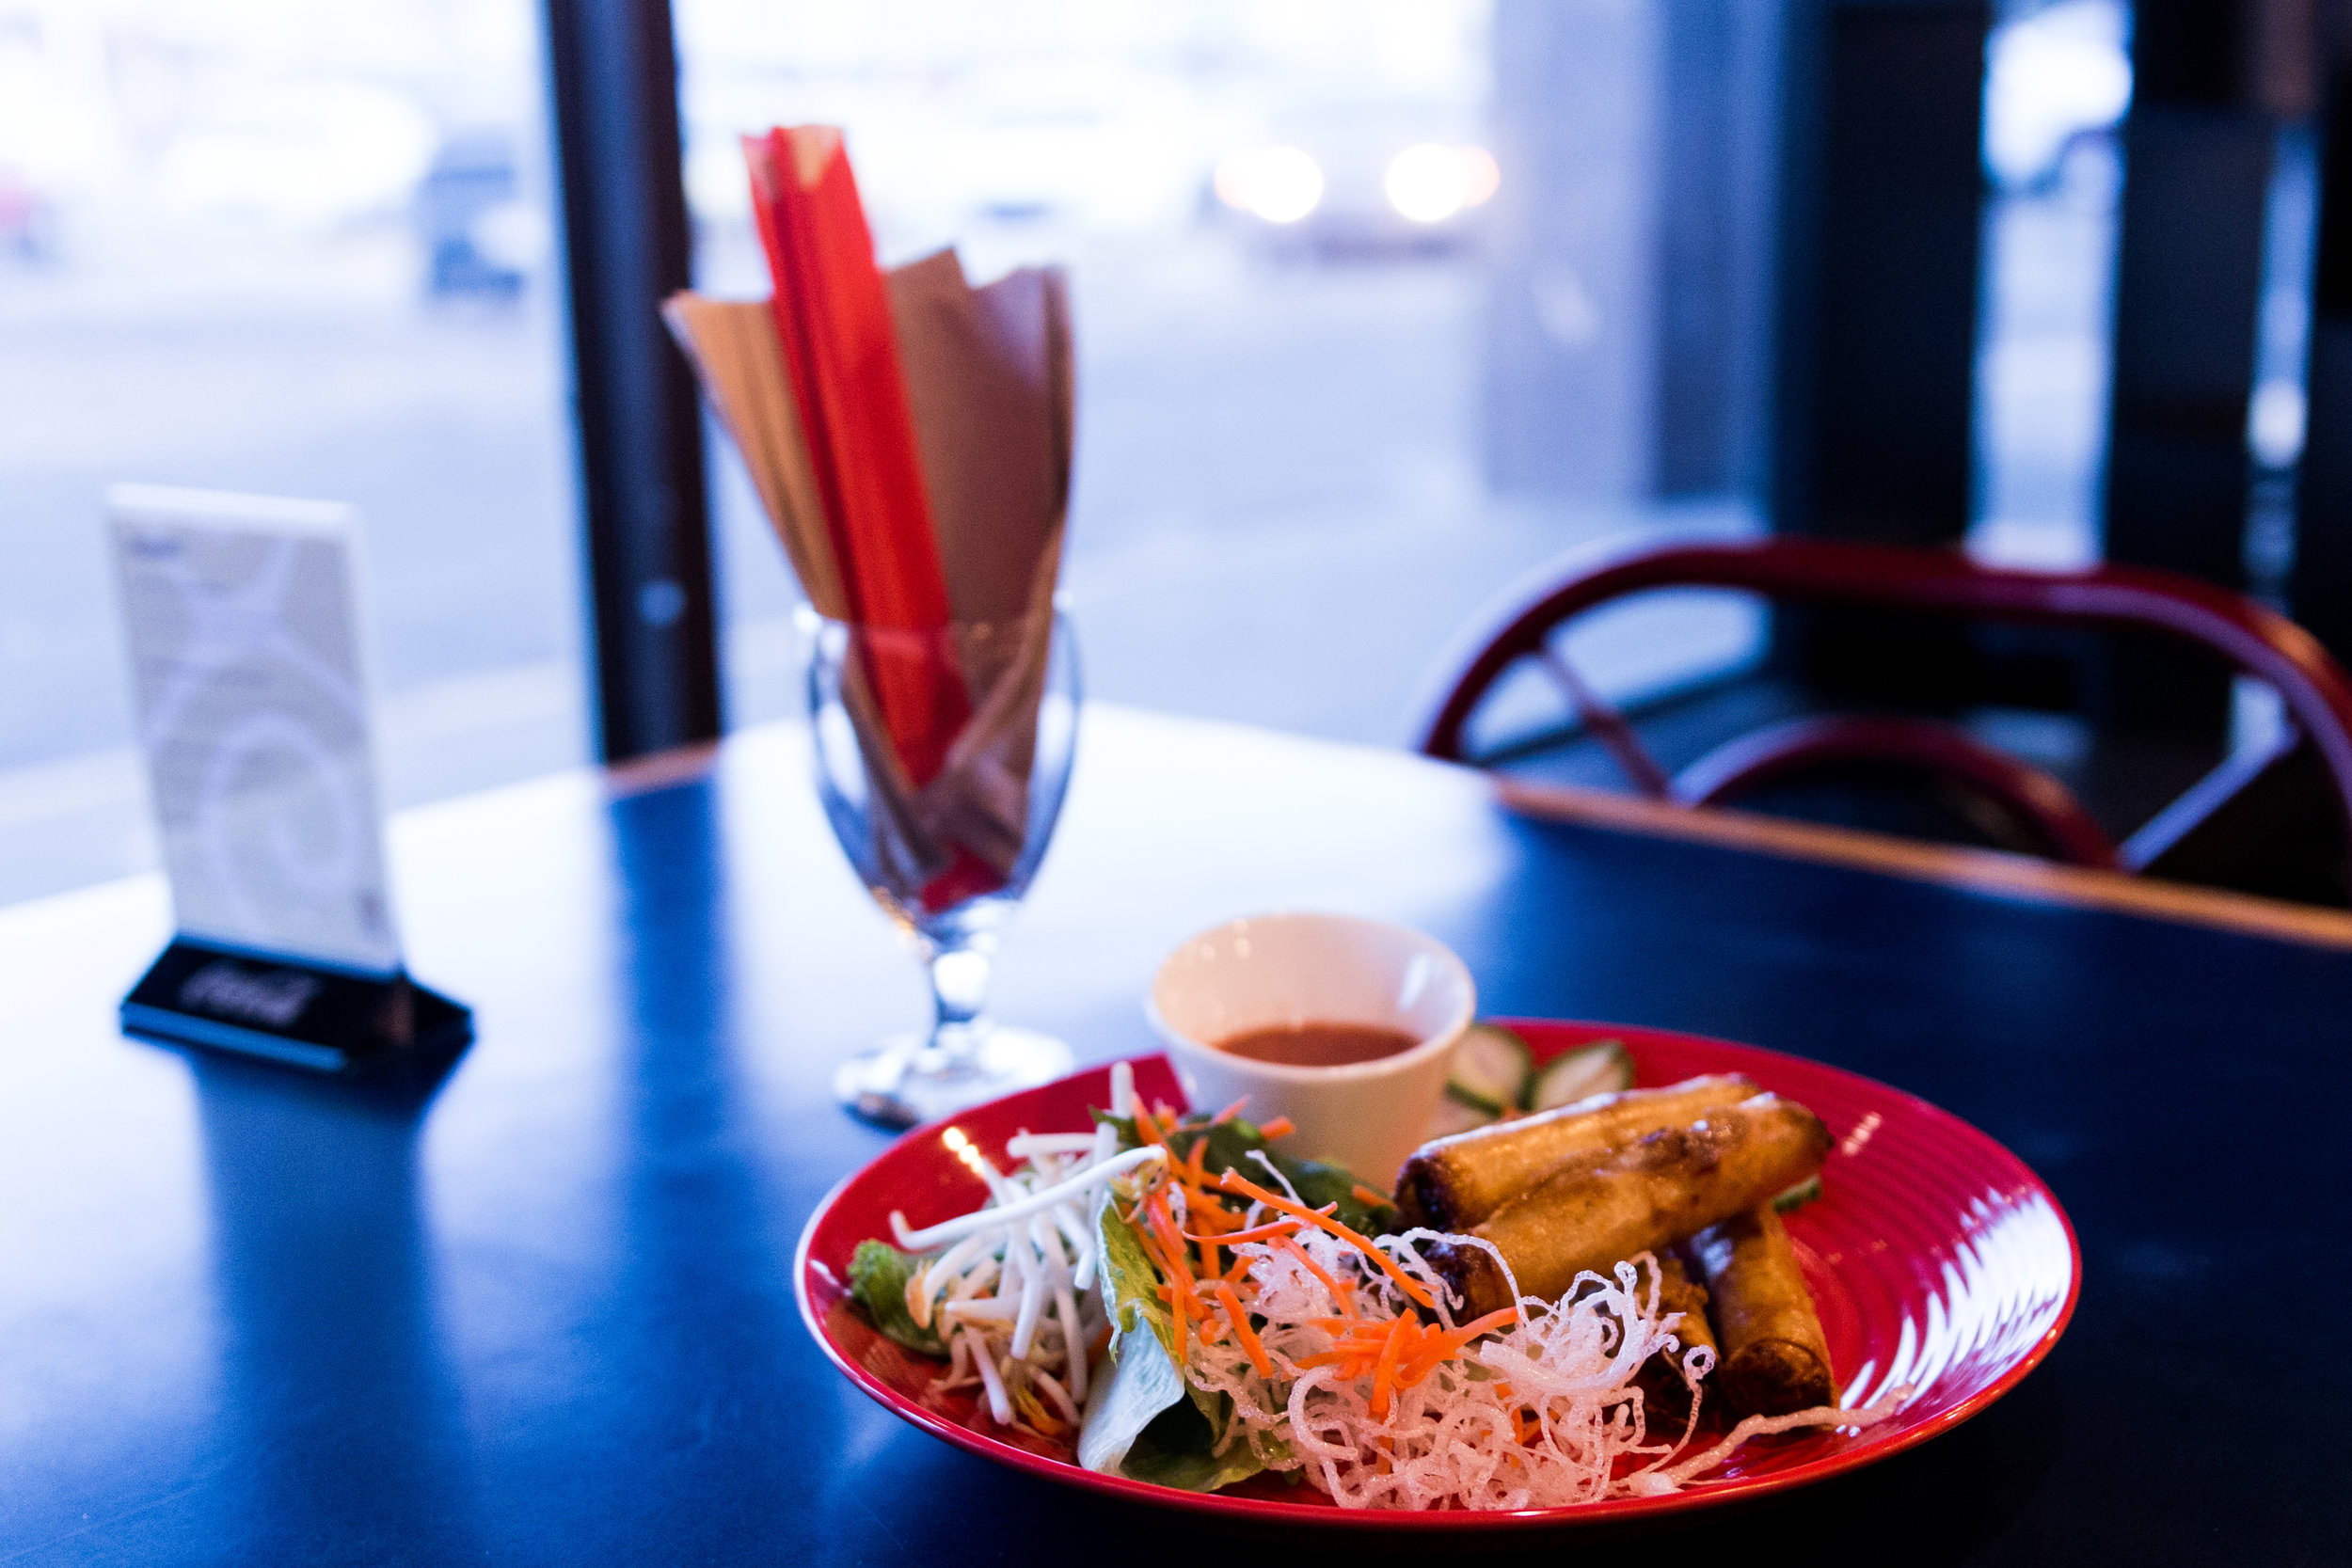 New dish preview. These spring rolls now have a home on the menu.